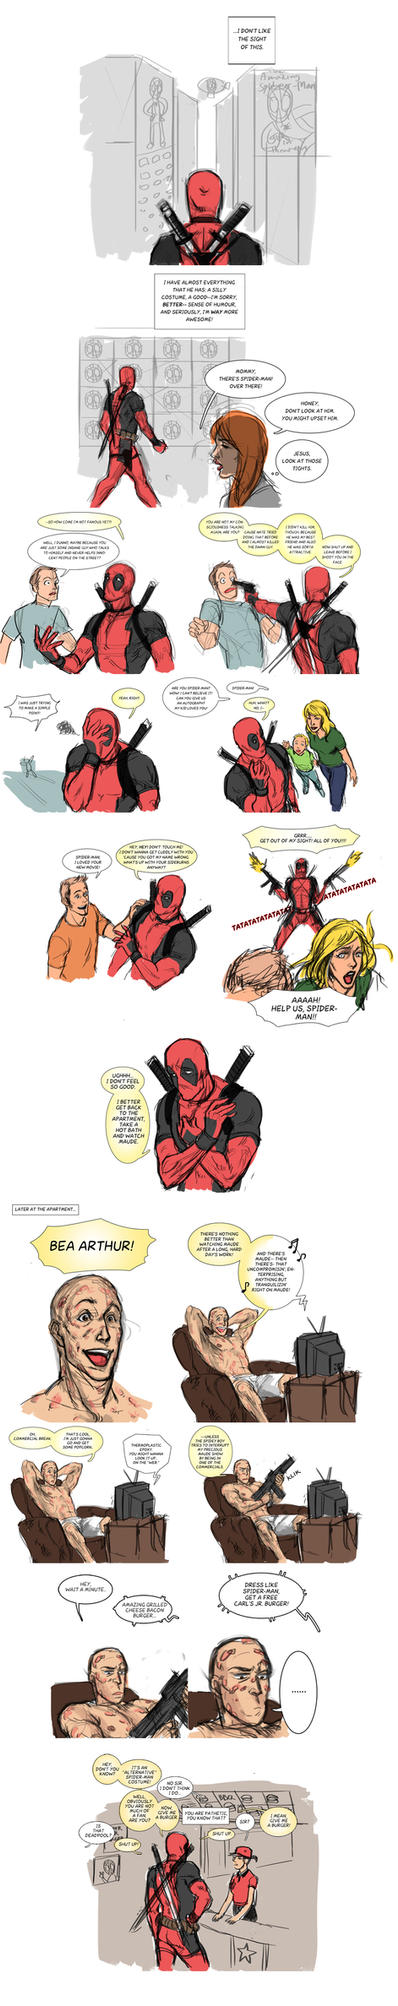 Short Deadpool Comic : Are You Spider-Man? by zer03908